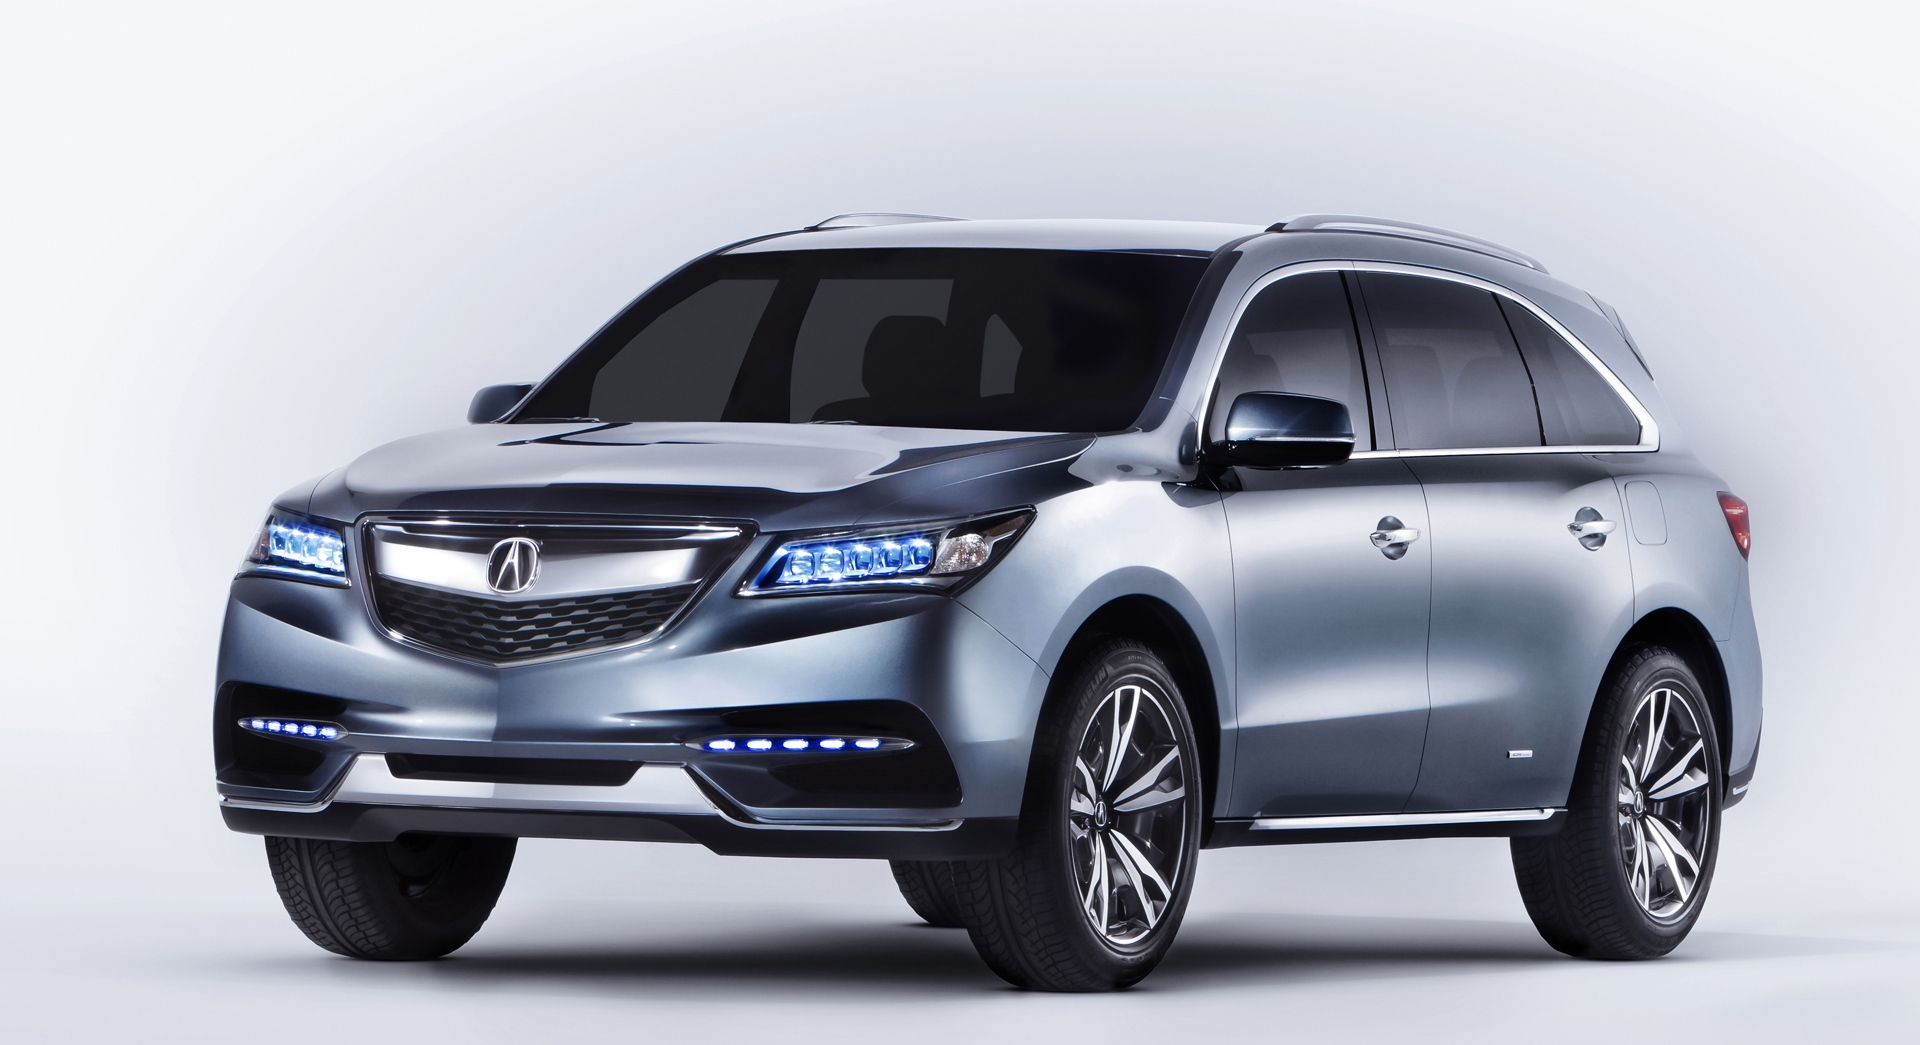 acura mdx Wallpapers hd prototype